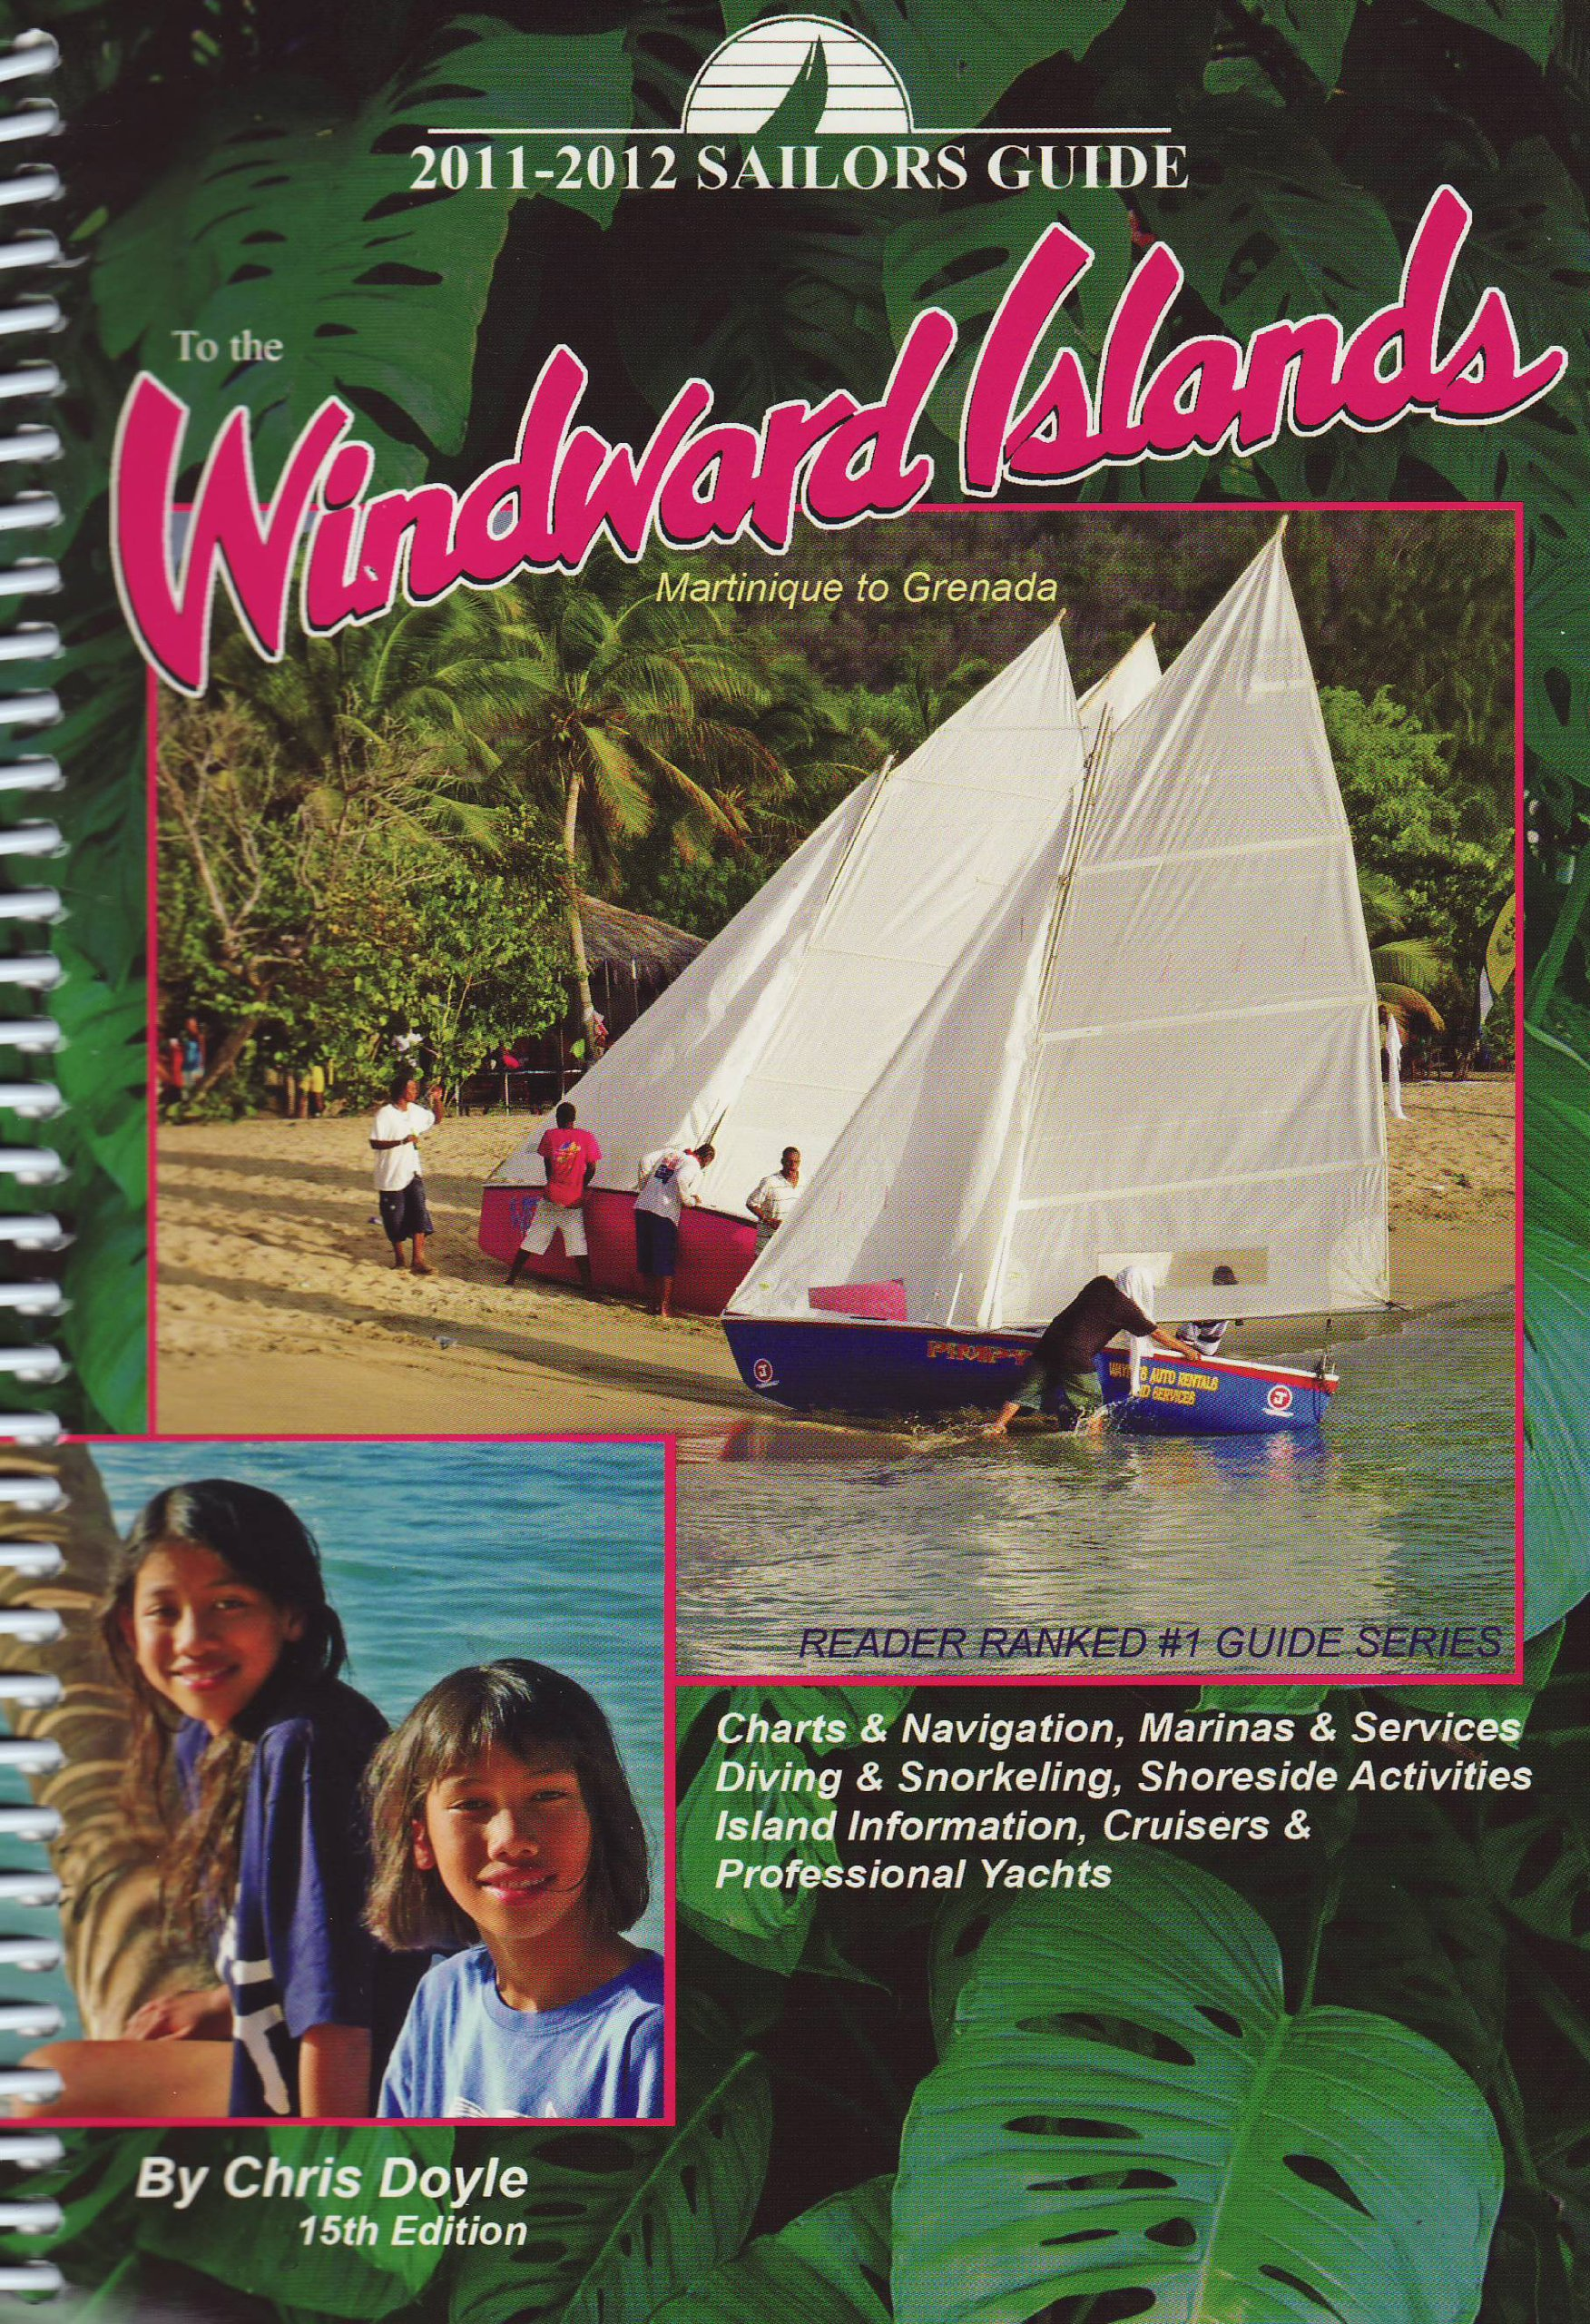 2011 2012 Sailors Guide to the Windward Islands: Martinique to Grenada (Sailor's Guides)